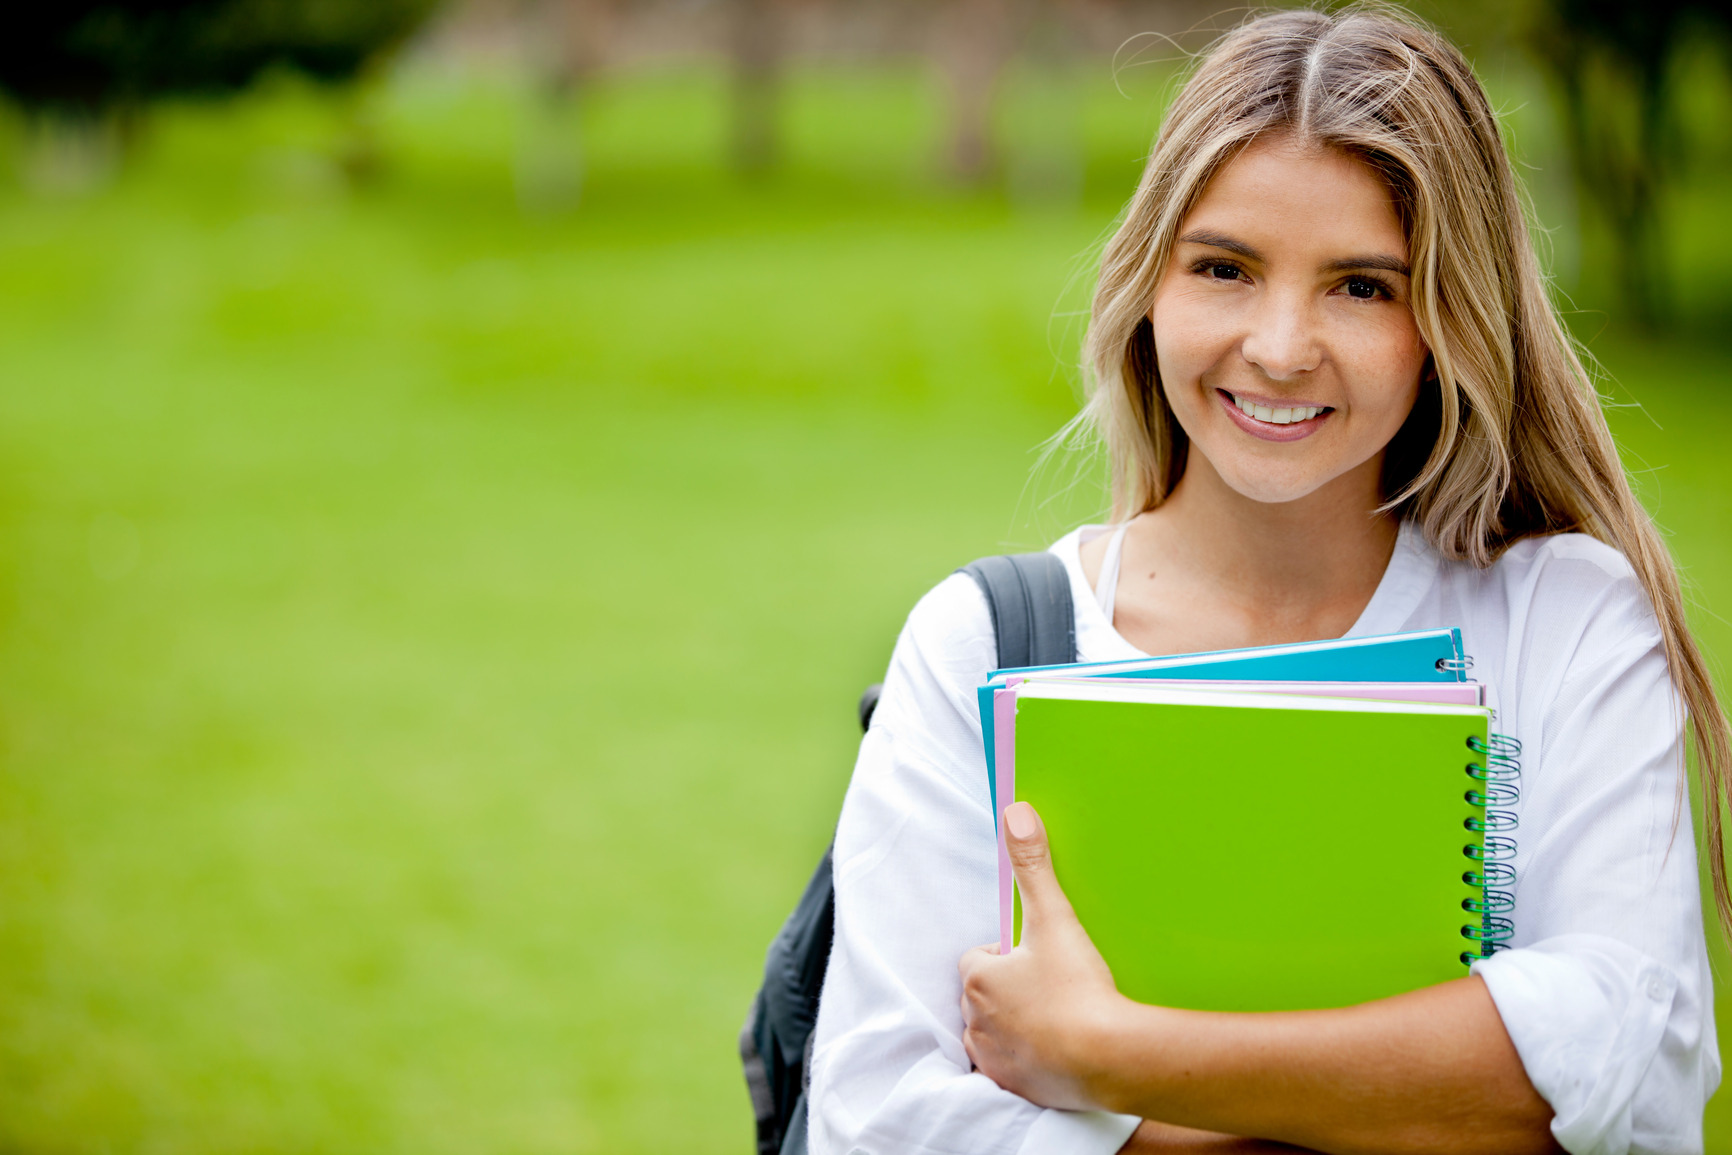 college student 2 essay This is a key year in the college planning process because you'll be  tuition,  room and board costs, course offerings, student activities, financial aid, etc   make any revisions to your application essays and prepare final drafts.